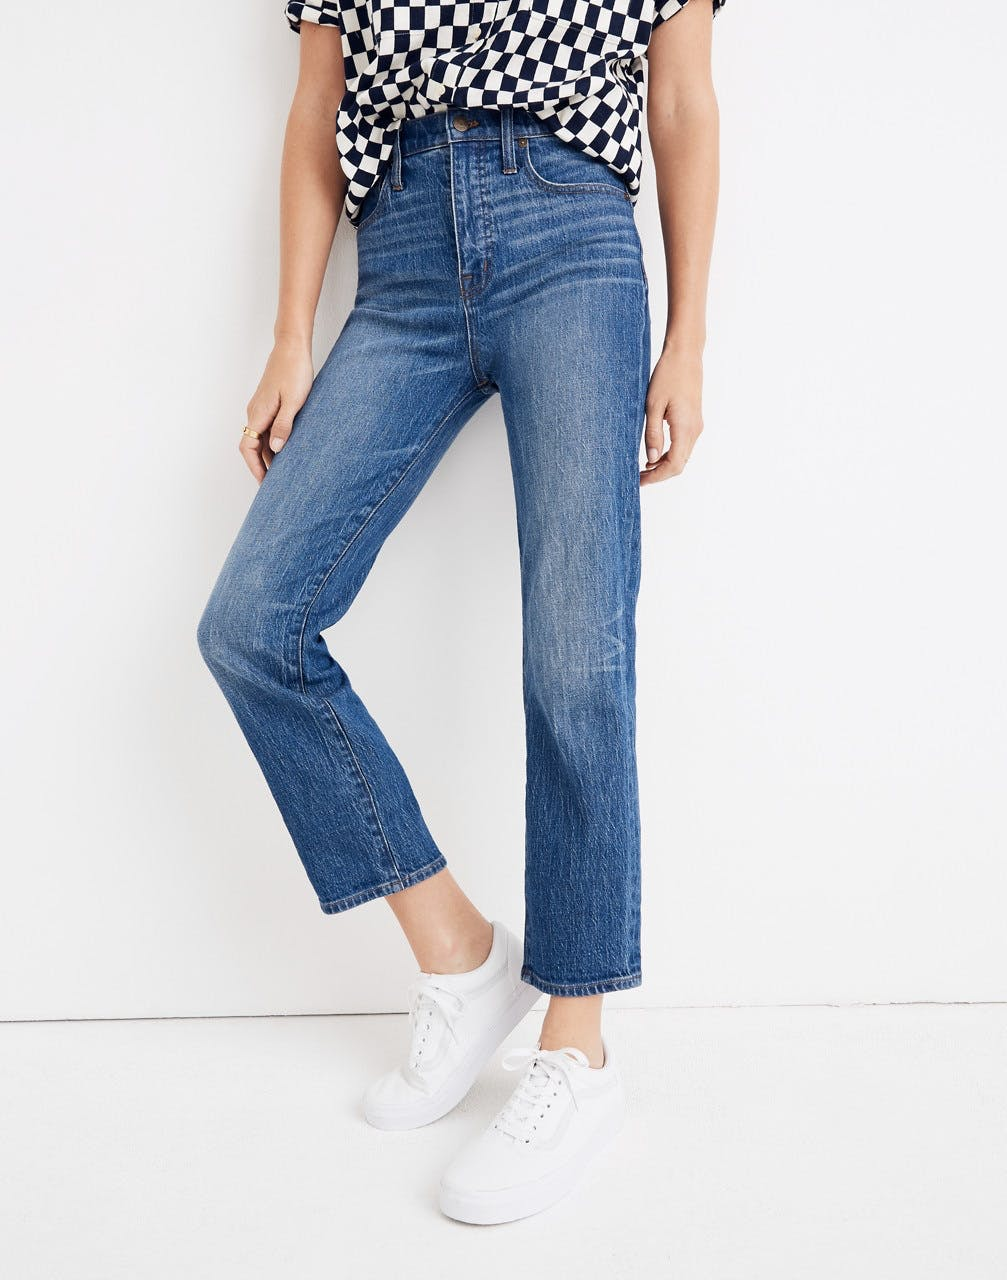 The Classic Straight Jeans